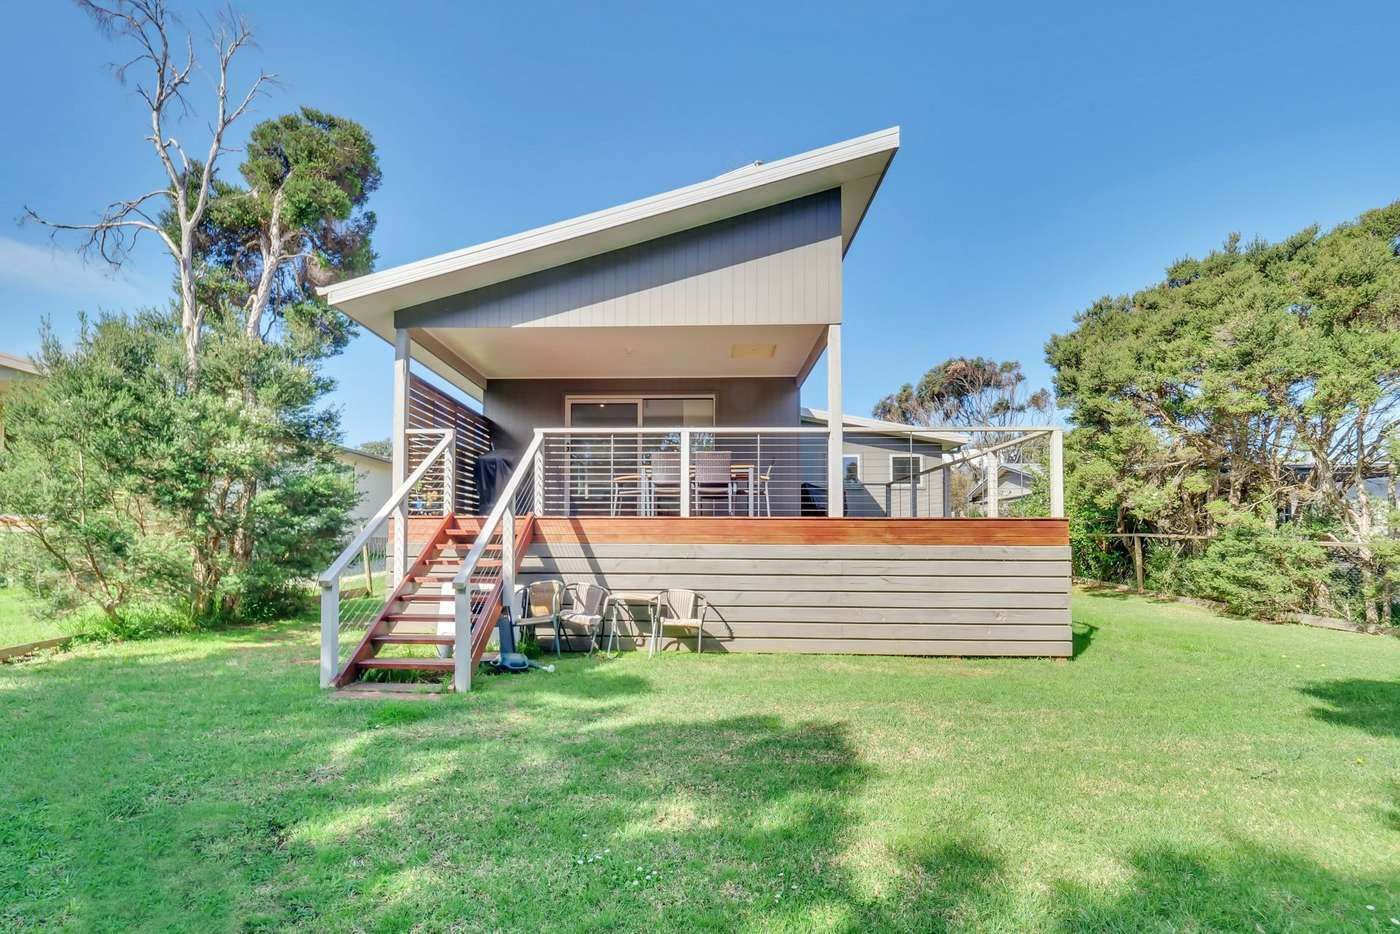 Main view of Homely house listing, 32 Dolphin Drive, Smiths Beach VIC 3922